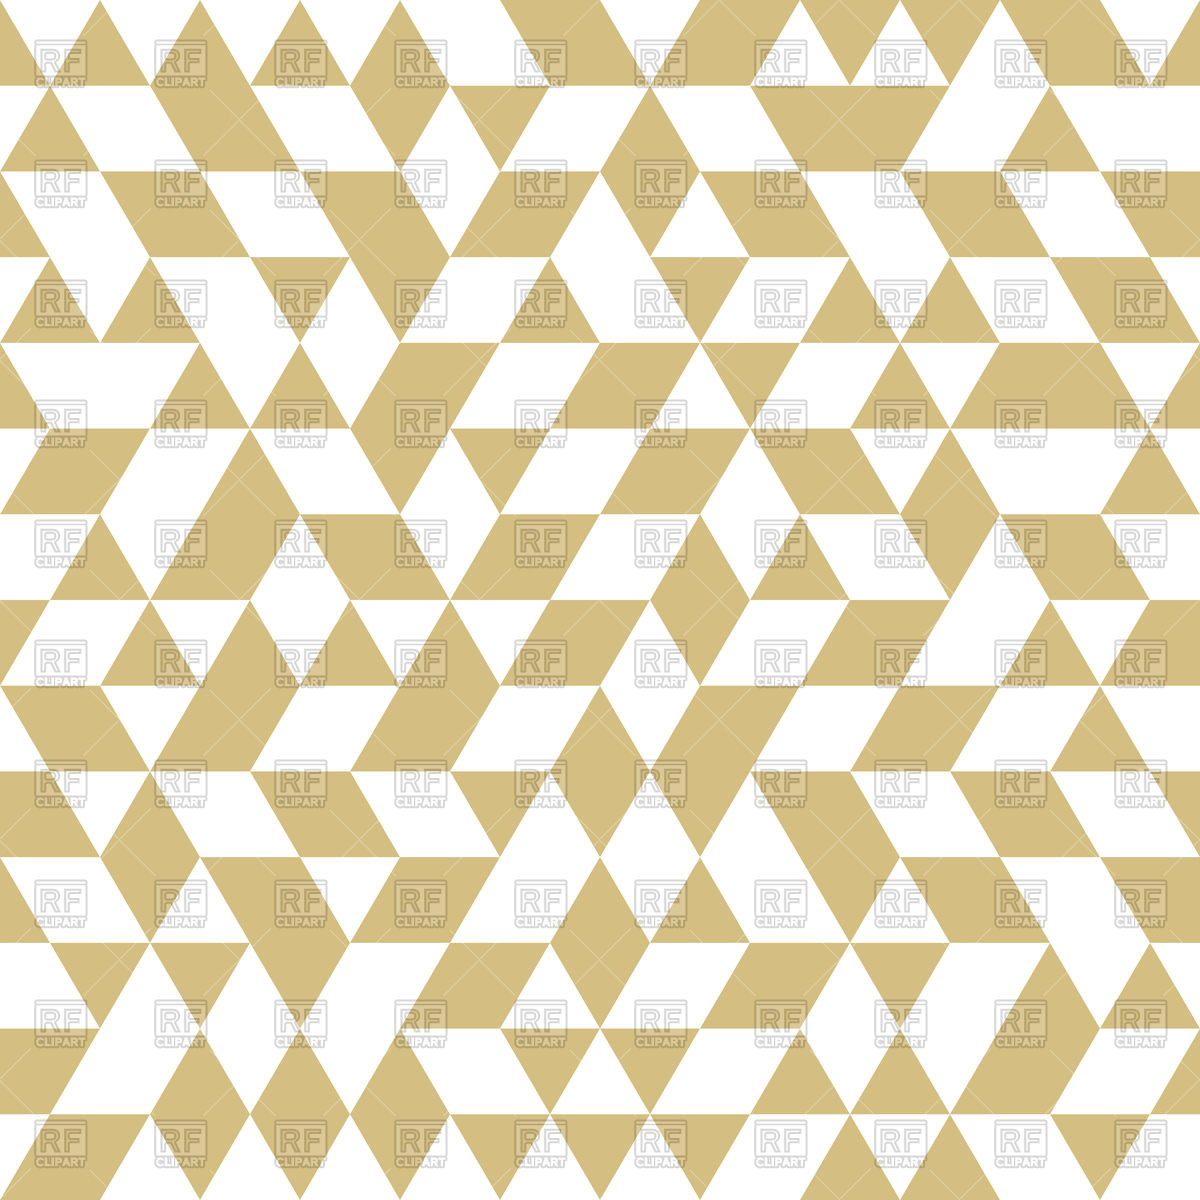 1200x1200 Golden Geometrical Pattern White Triangles And Rhombus Vector